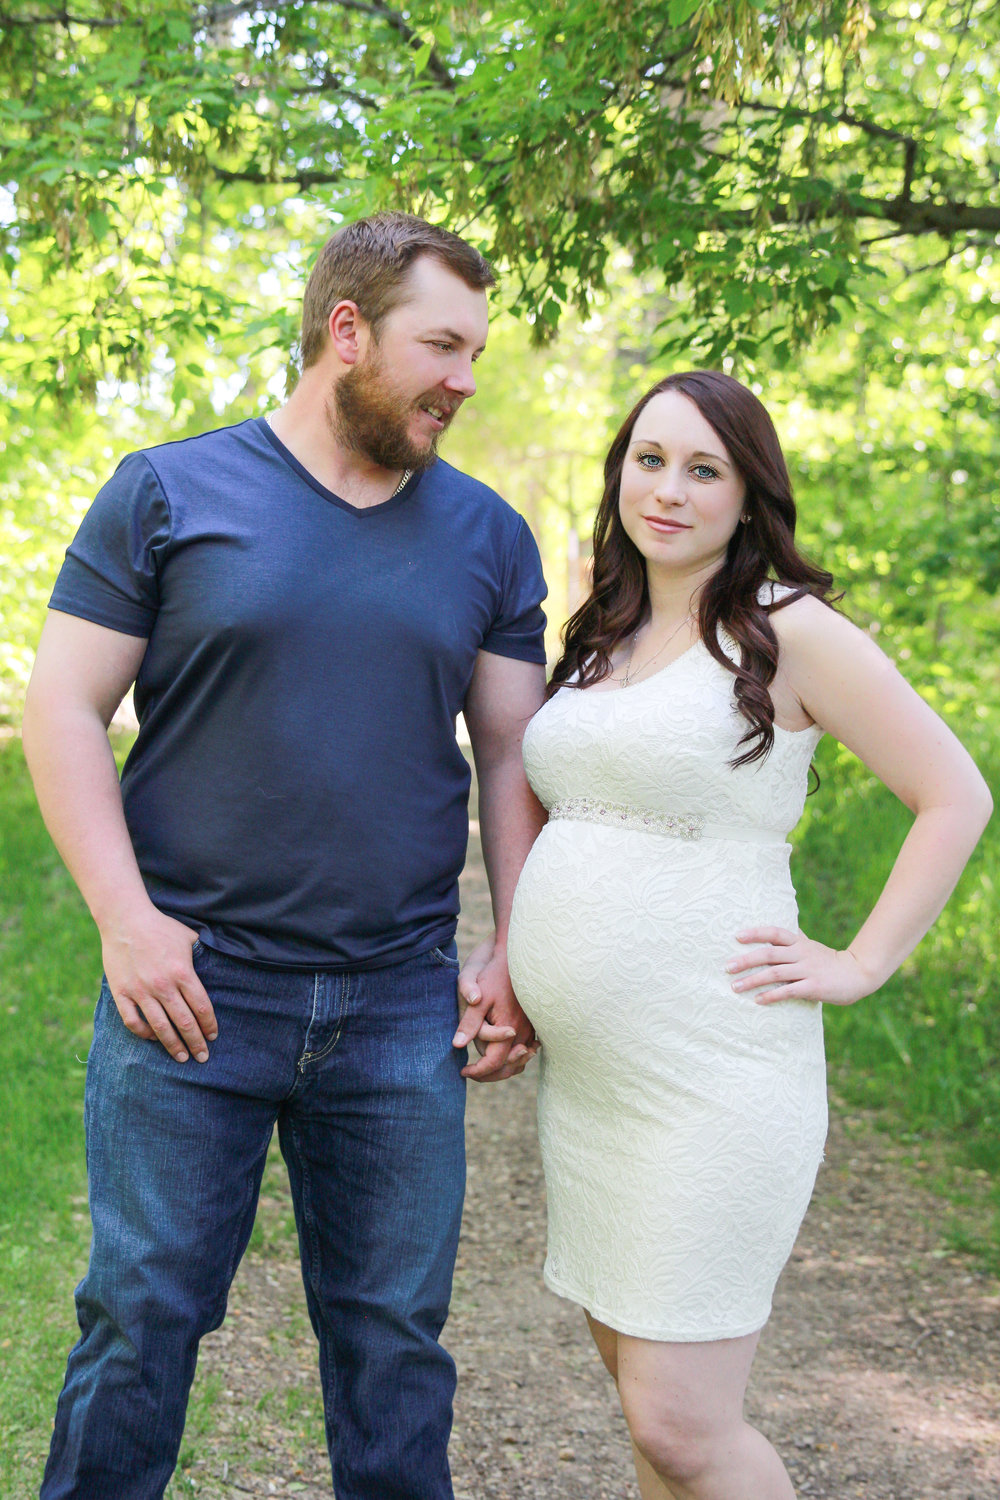 M&P {Expecting!}_WEB-75.jpg